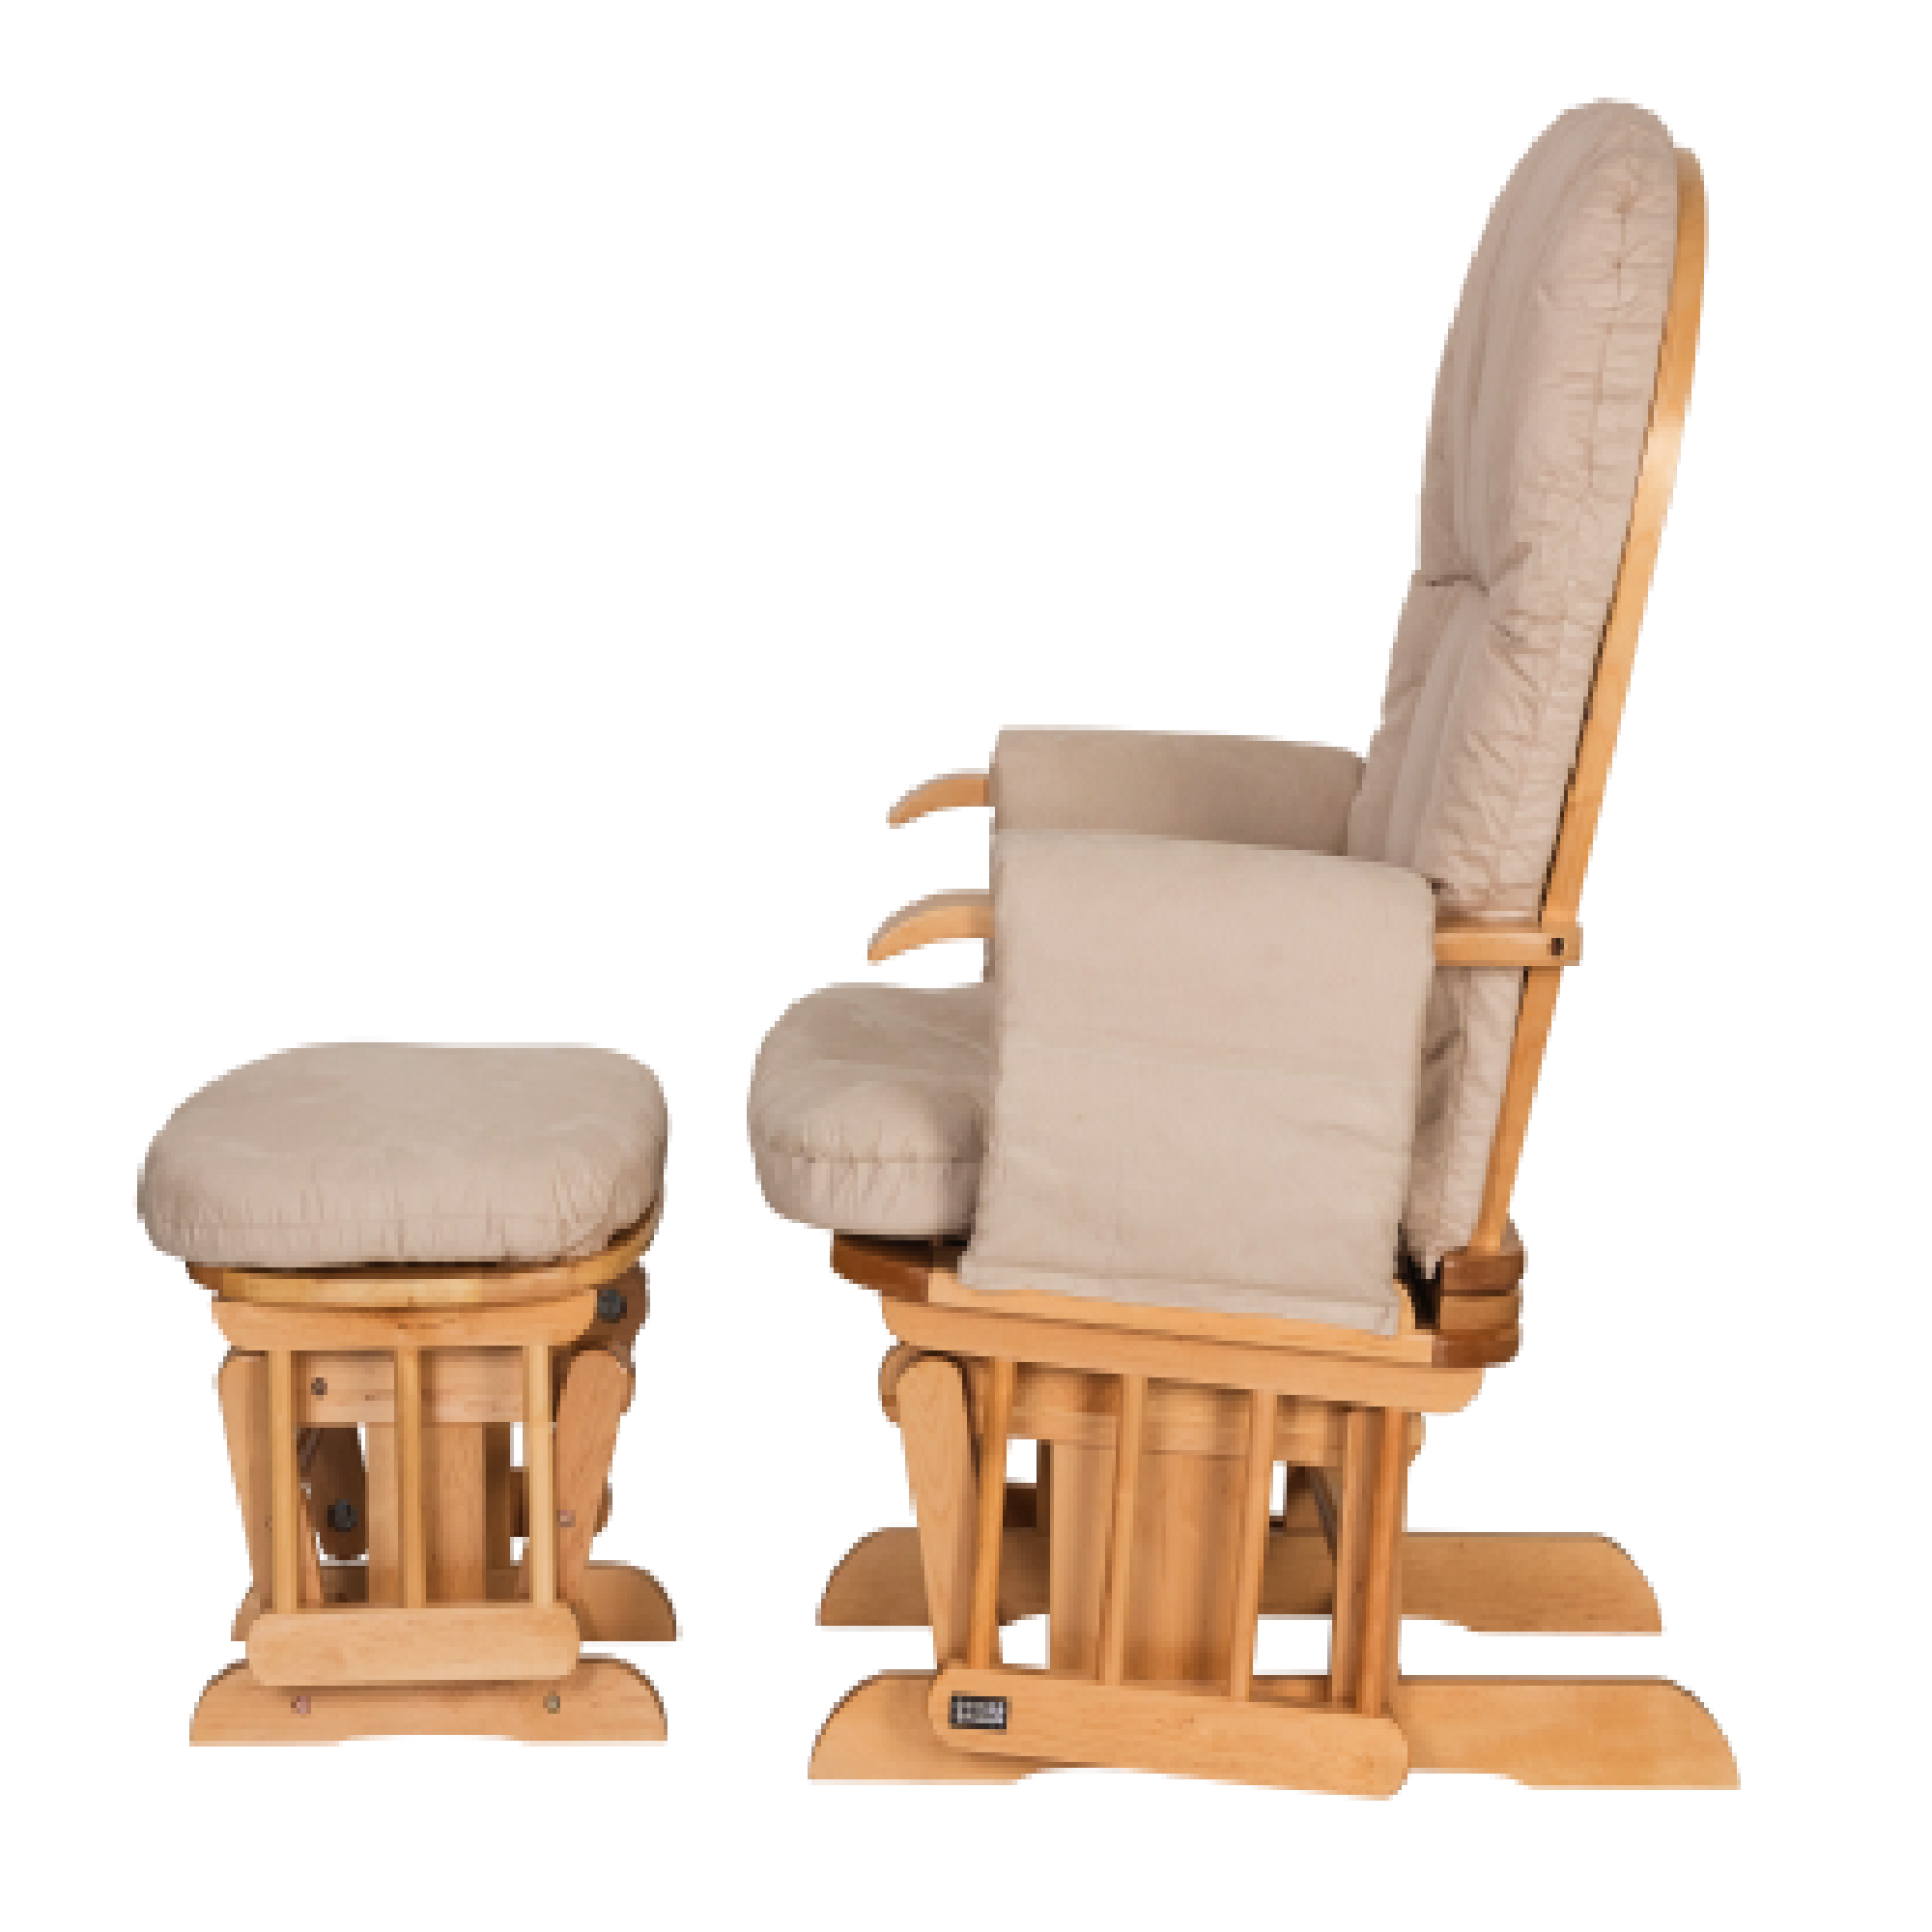 Tutti Bambini Reclining Glider Chair Stool Natural With Cream Cushions